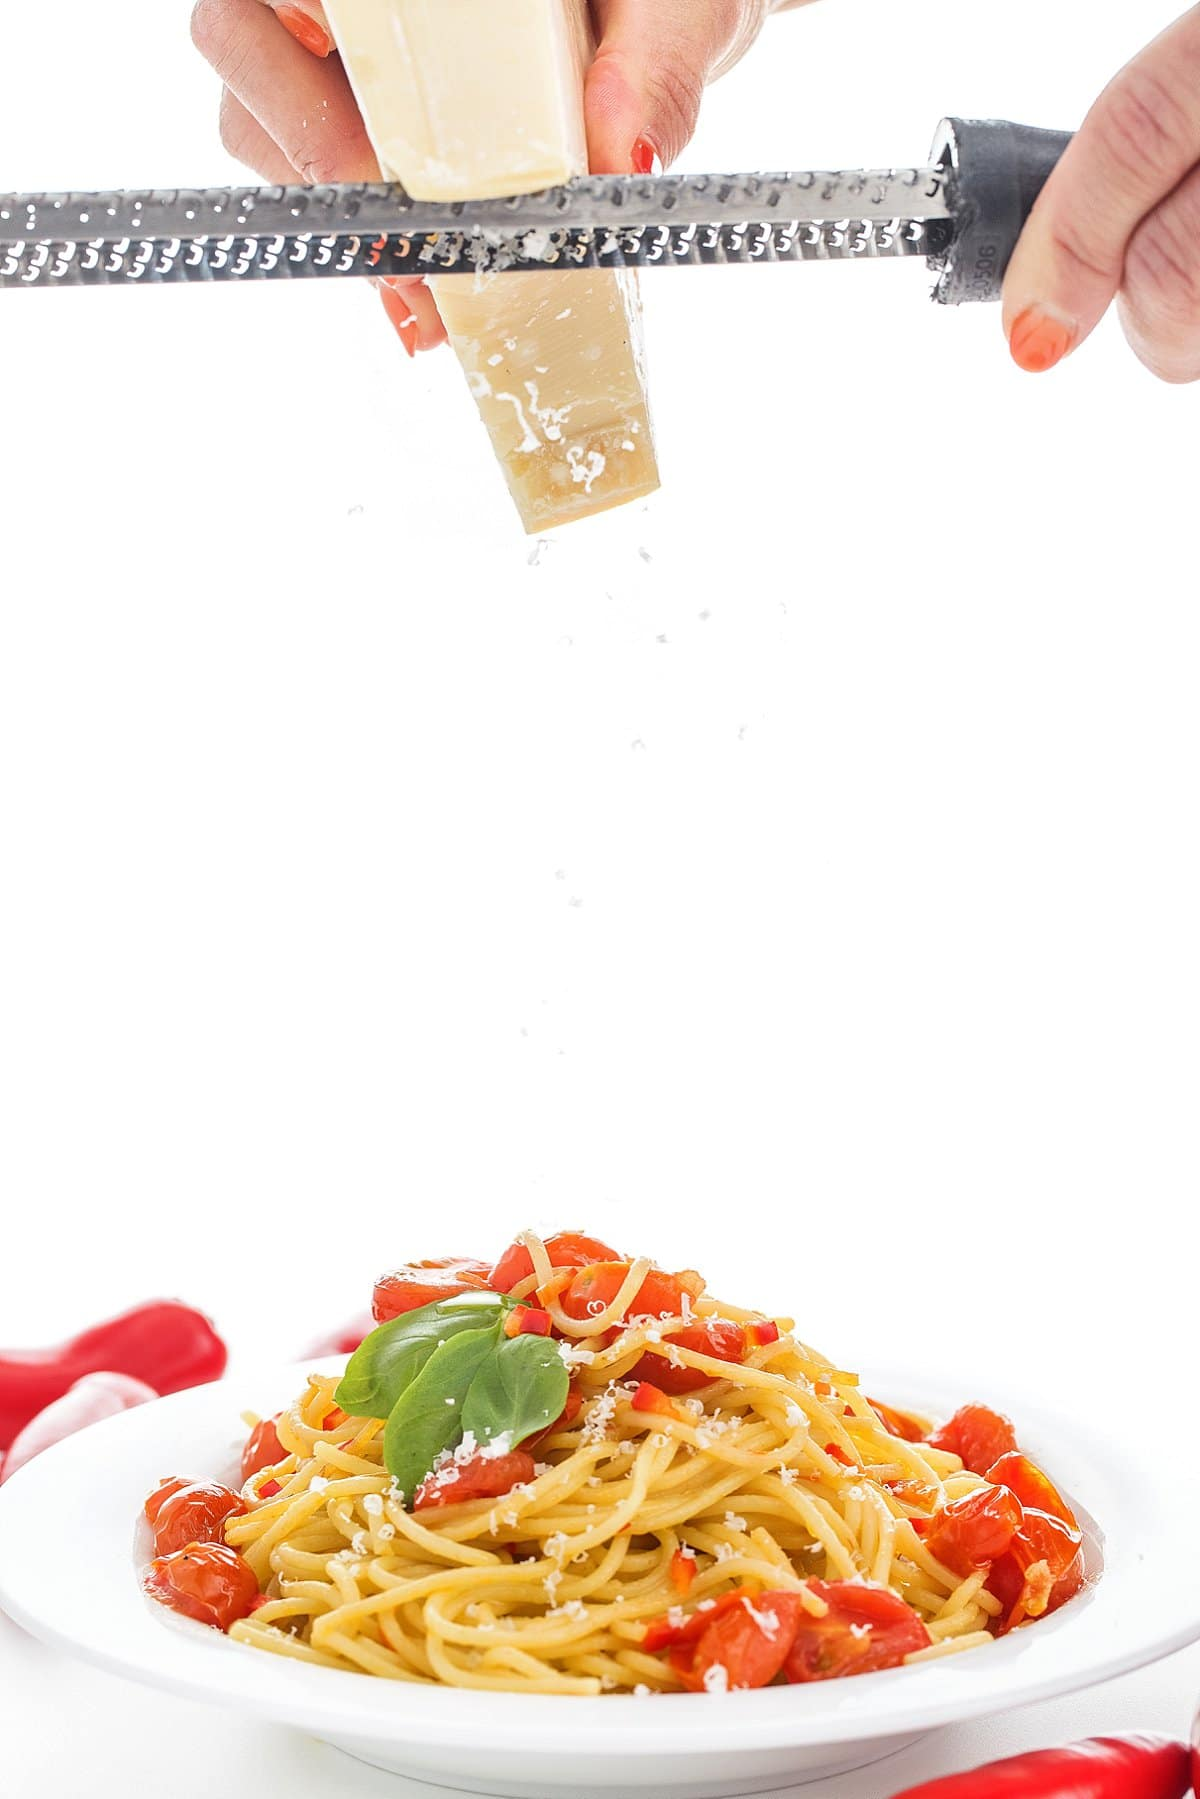 Grating parmesan cheese over spicy pasta with garlic and olive oil